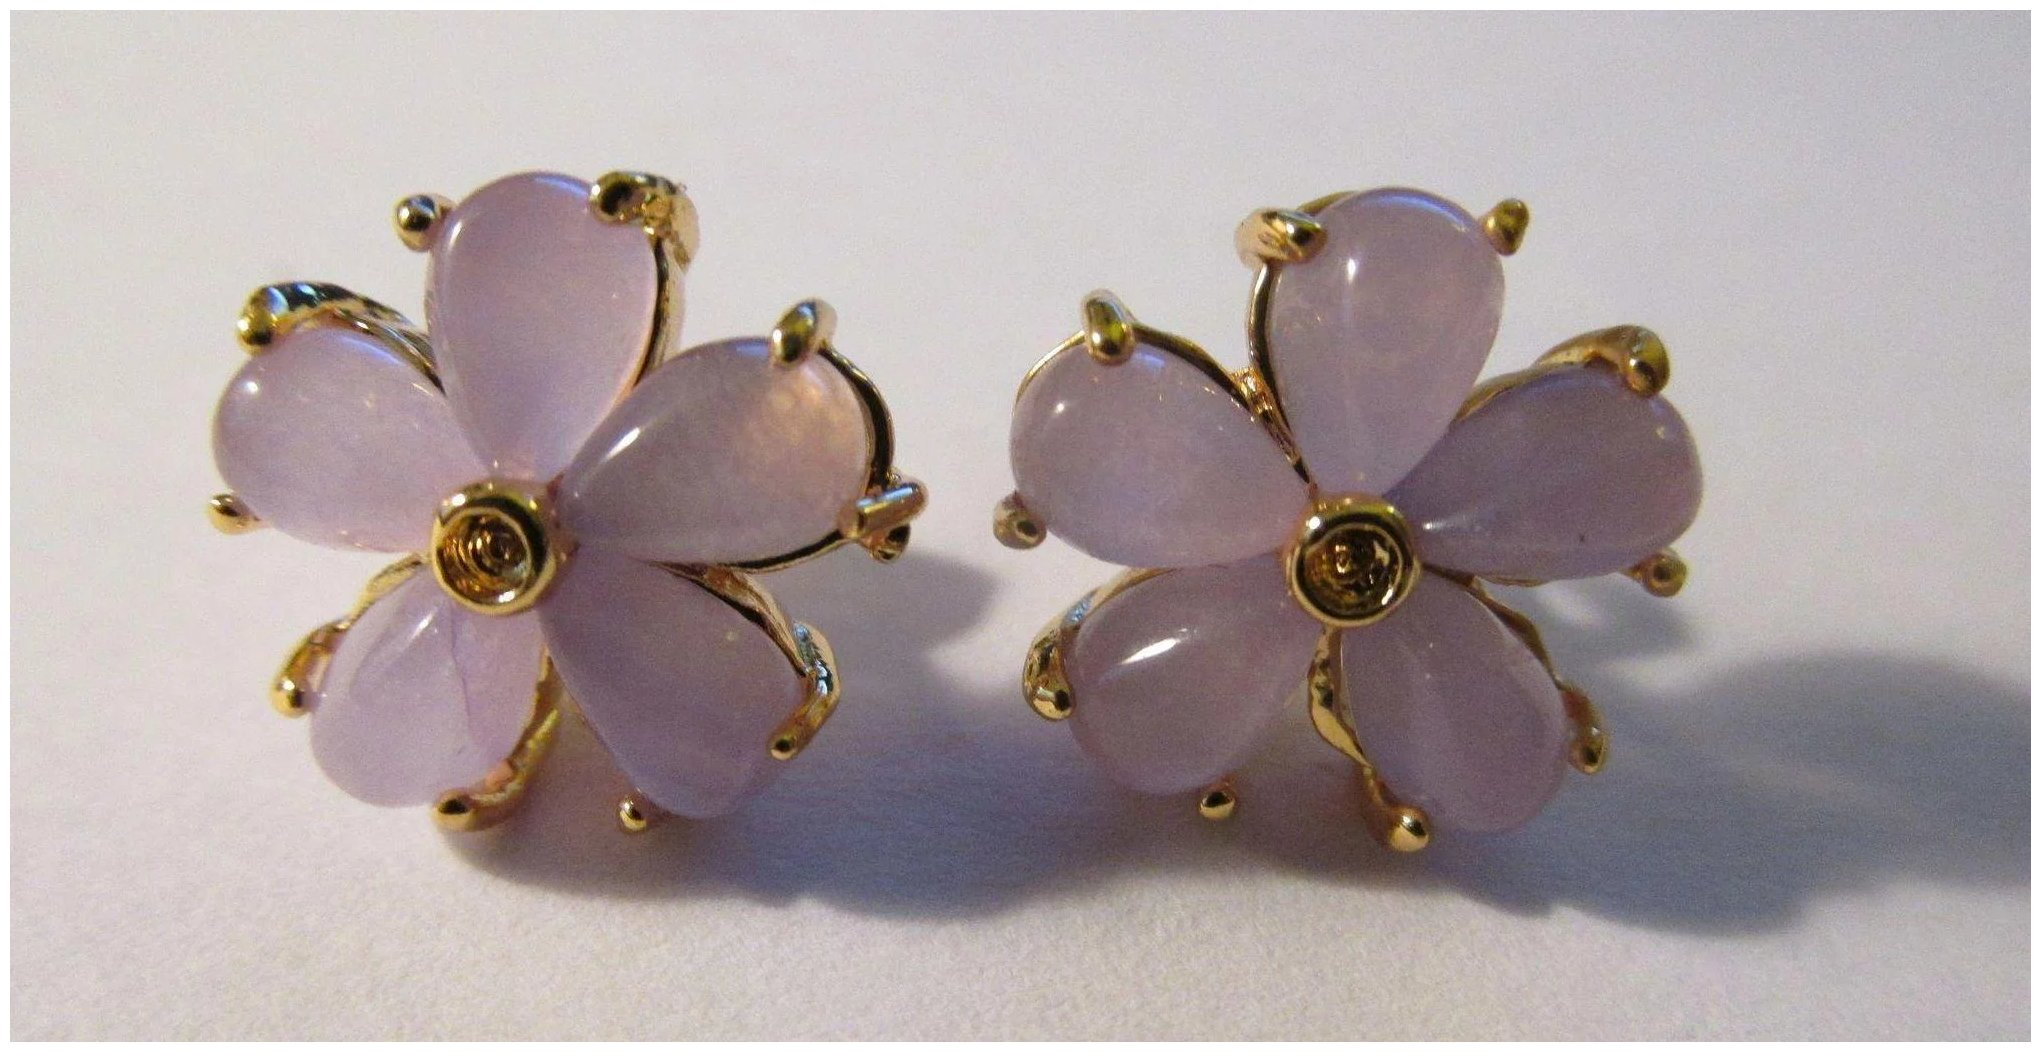 jewellery earring tala purple product gold diamonds earrings rose flower amethyst